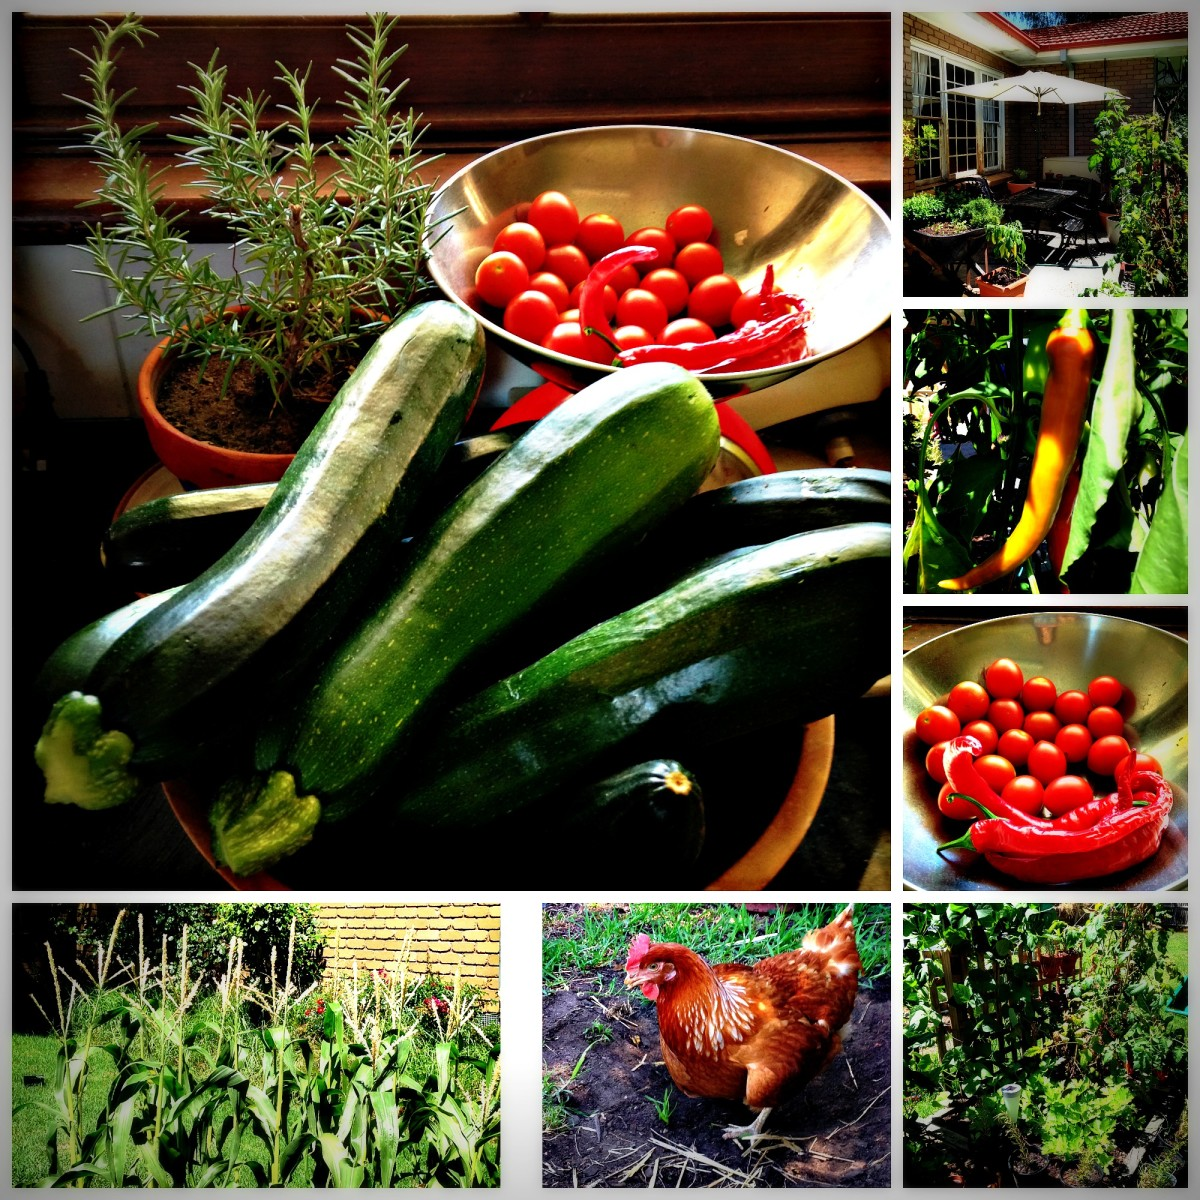 Growing Vegetables and Fruit Sustainably in Your Back Yard